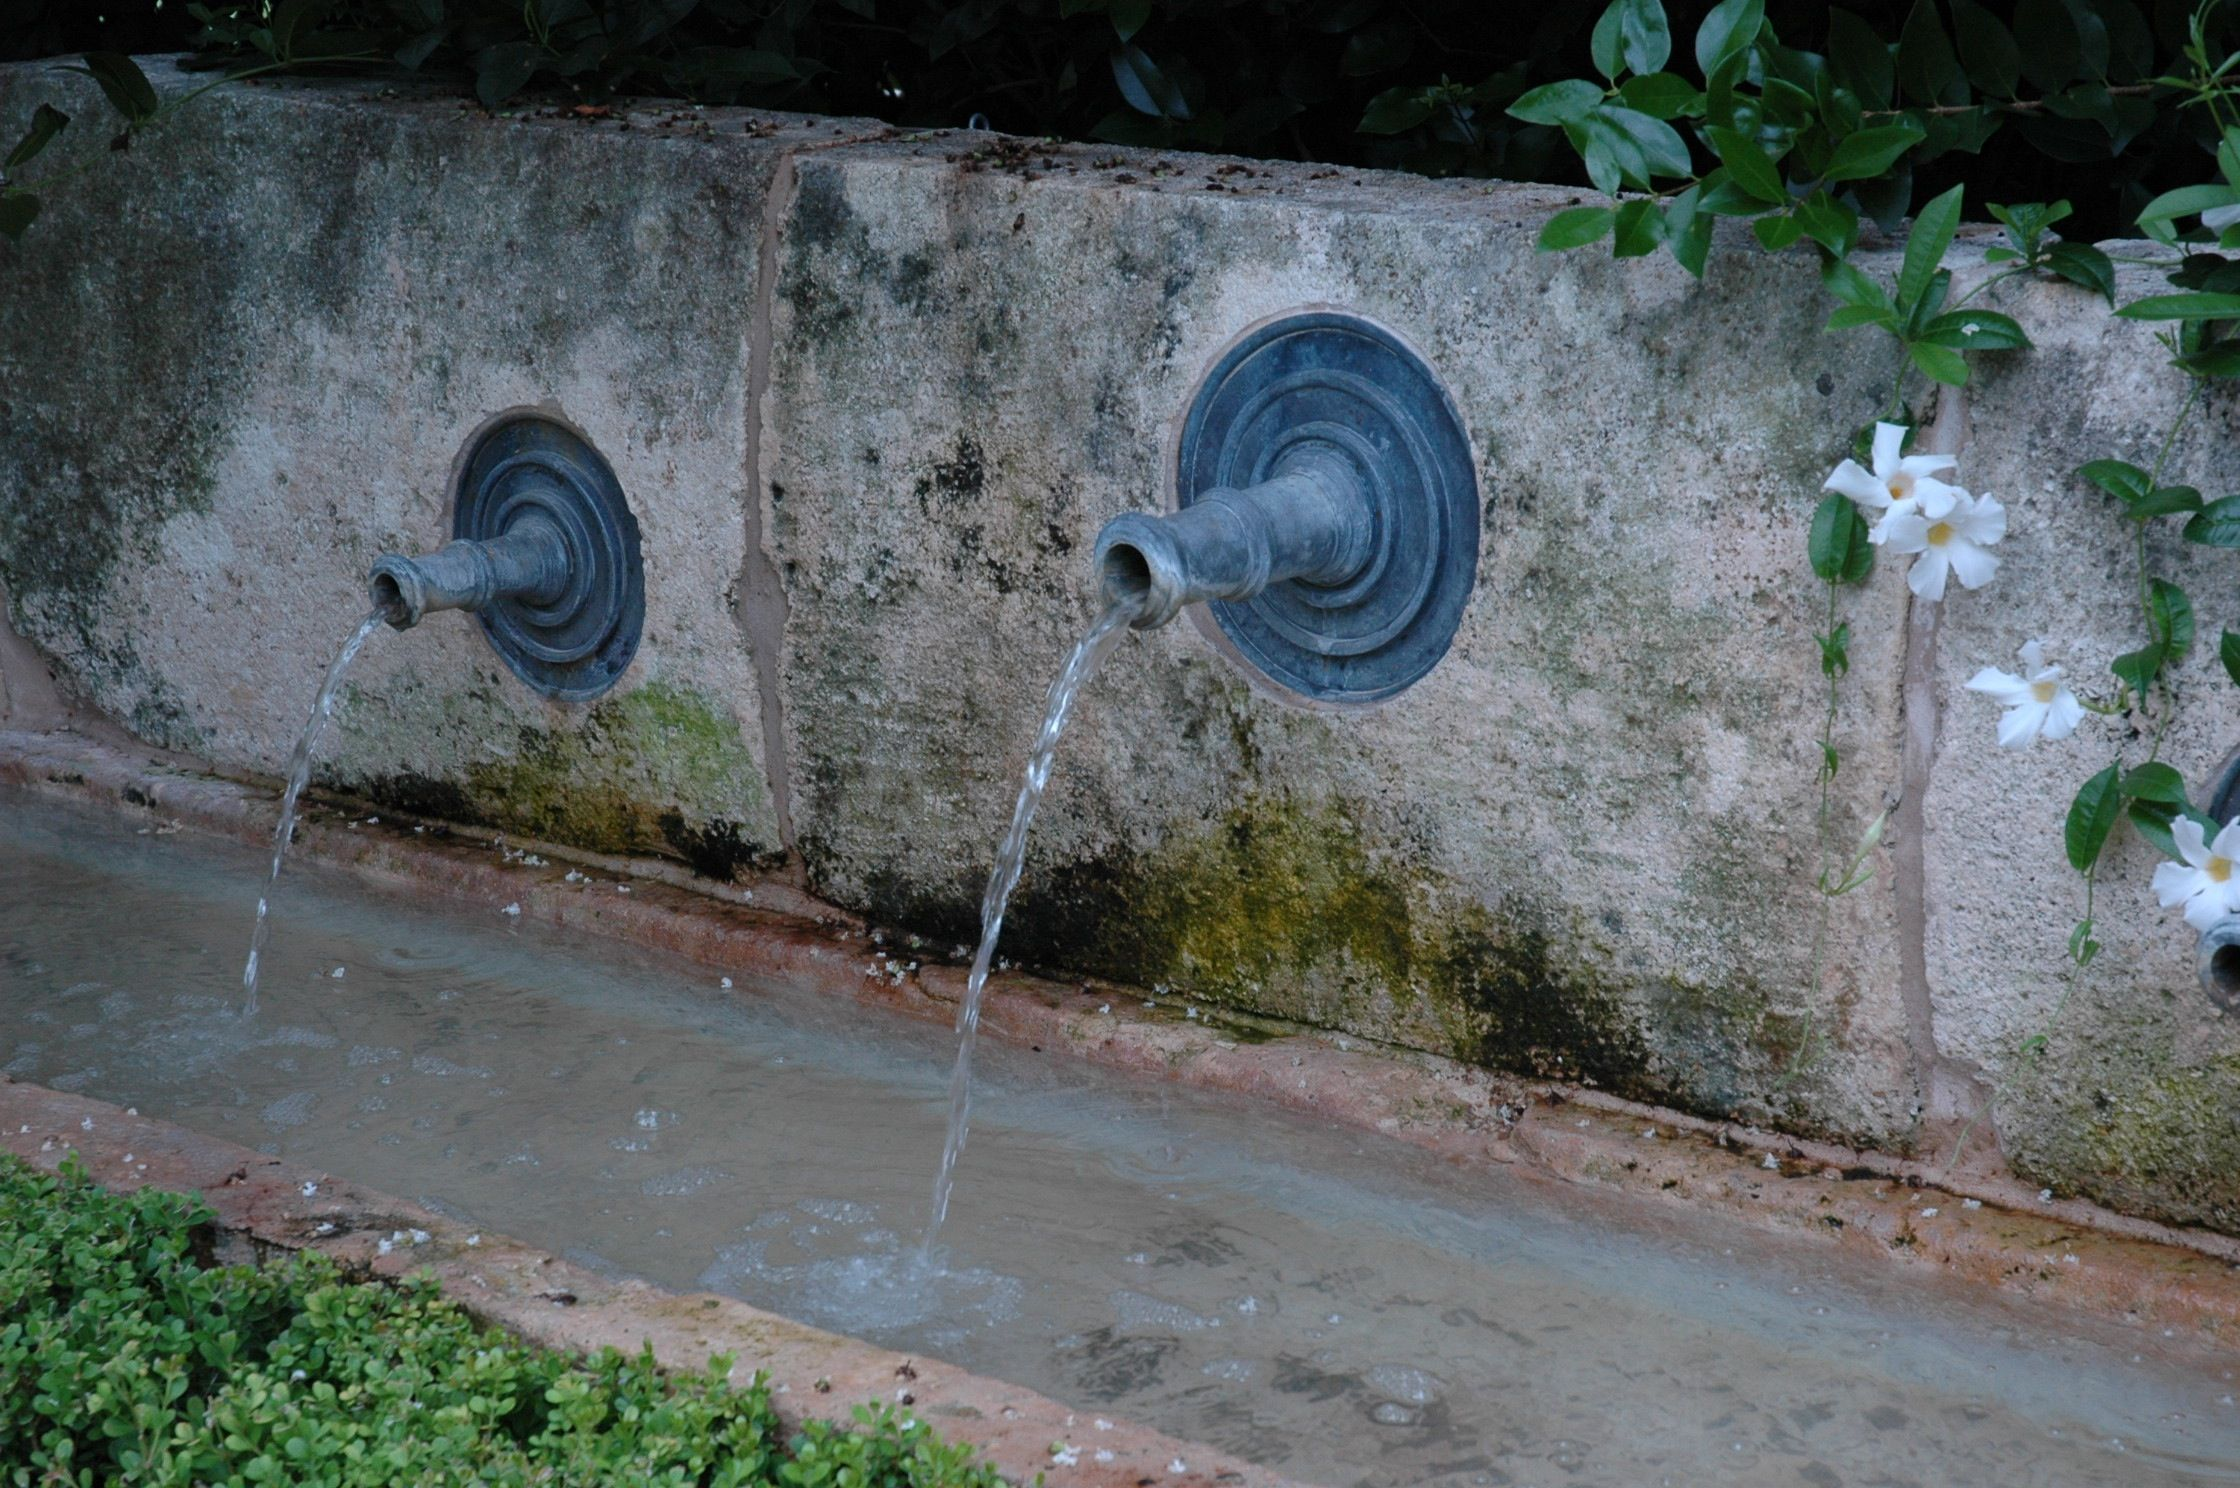 Pin By Alison Albon On Home Pool Water Features Water Features Pretty Gardens